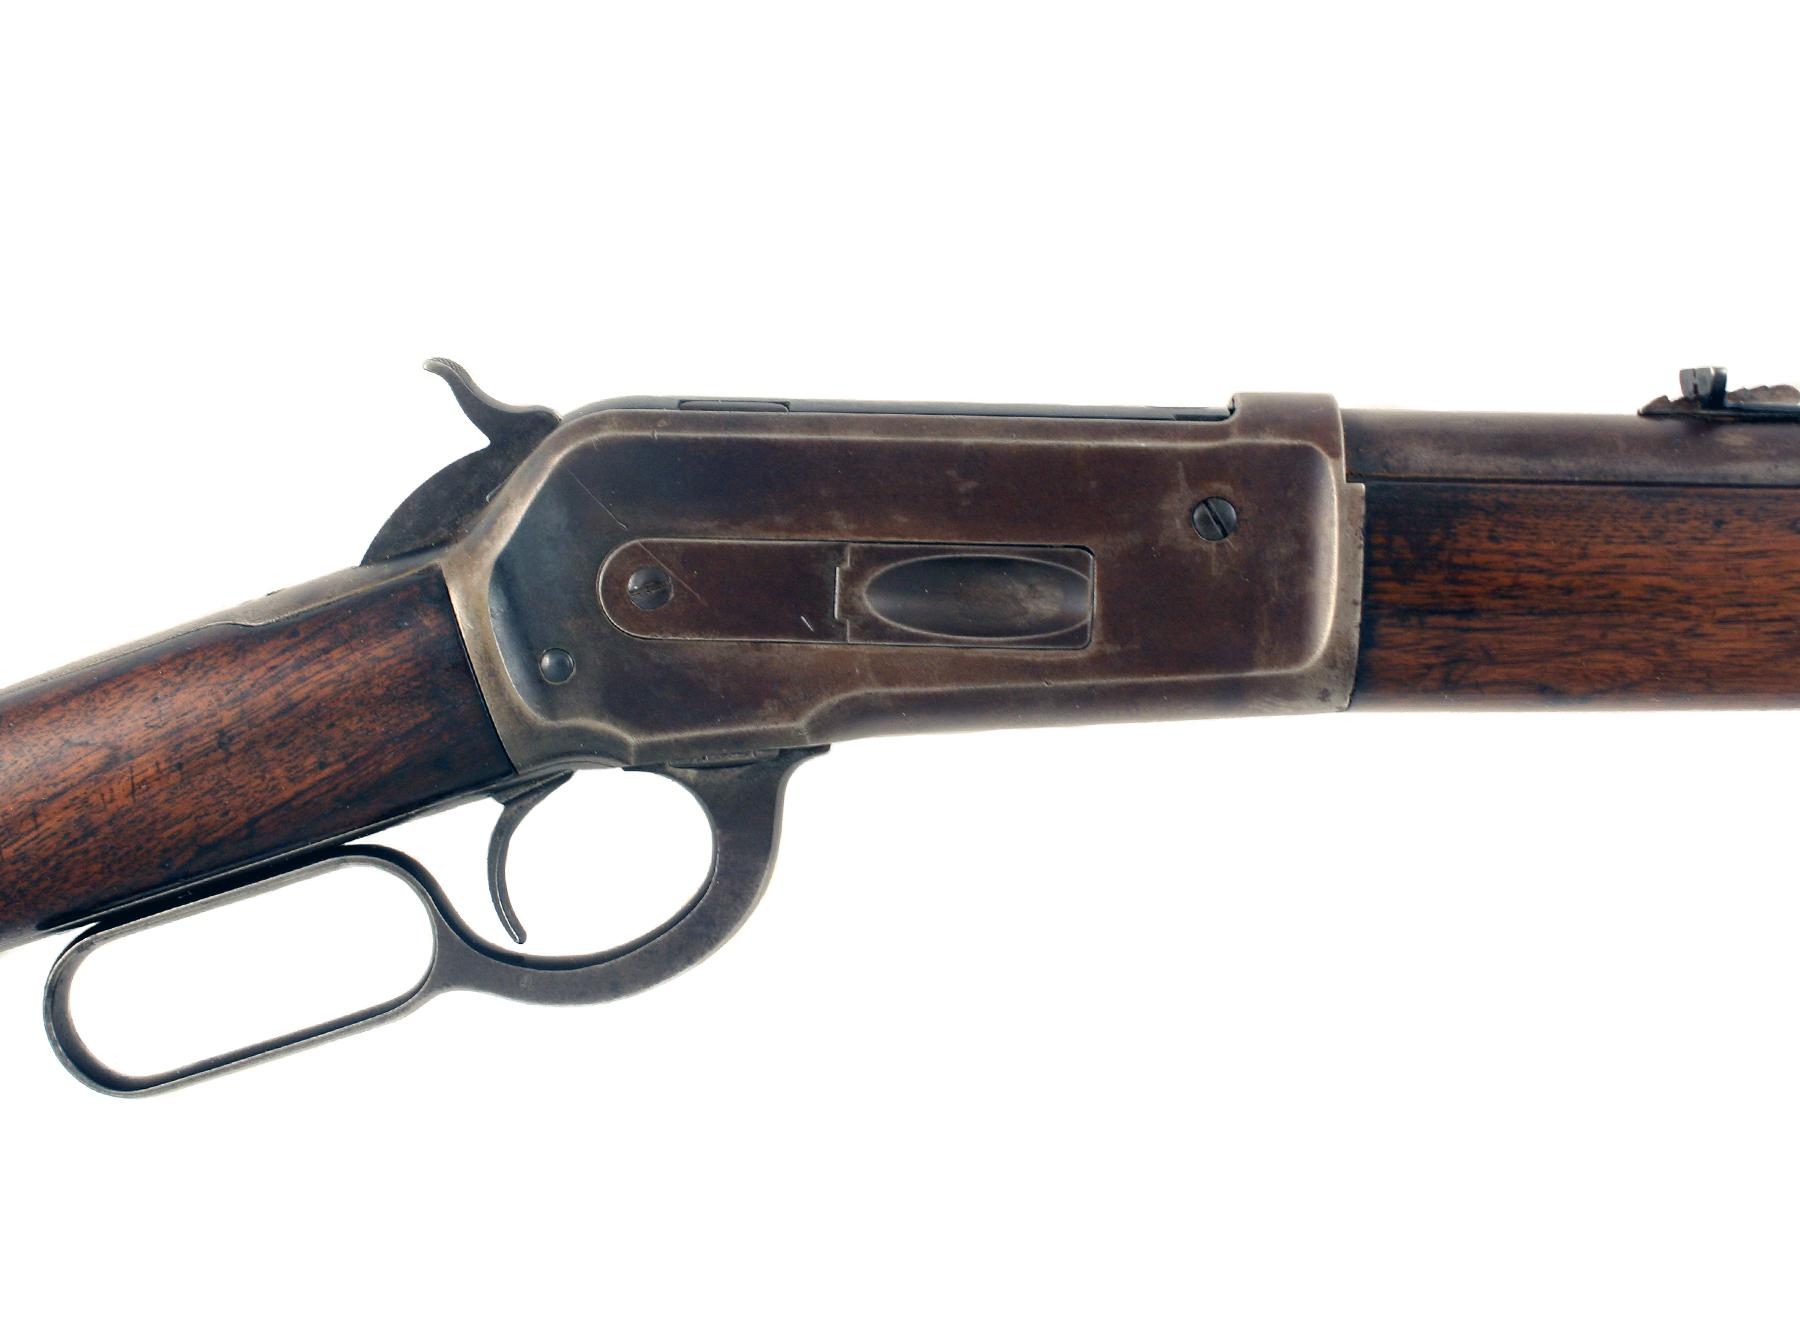 A Winchester 1886 Rifle